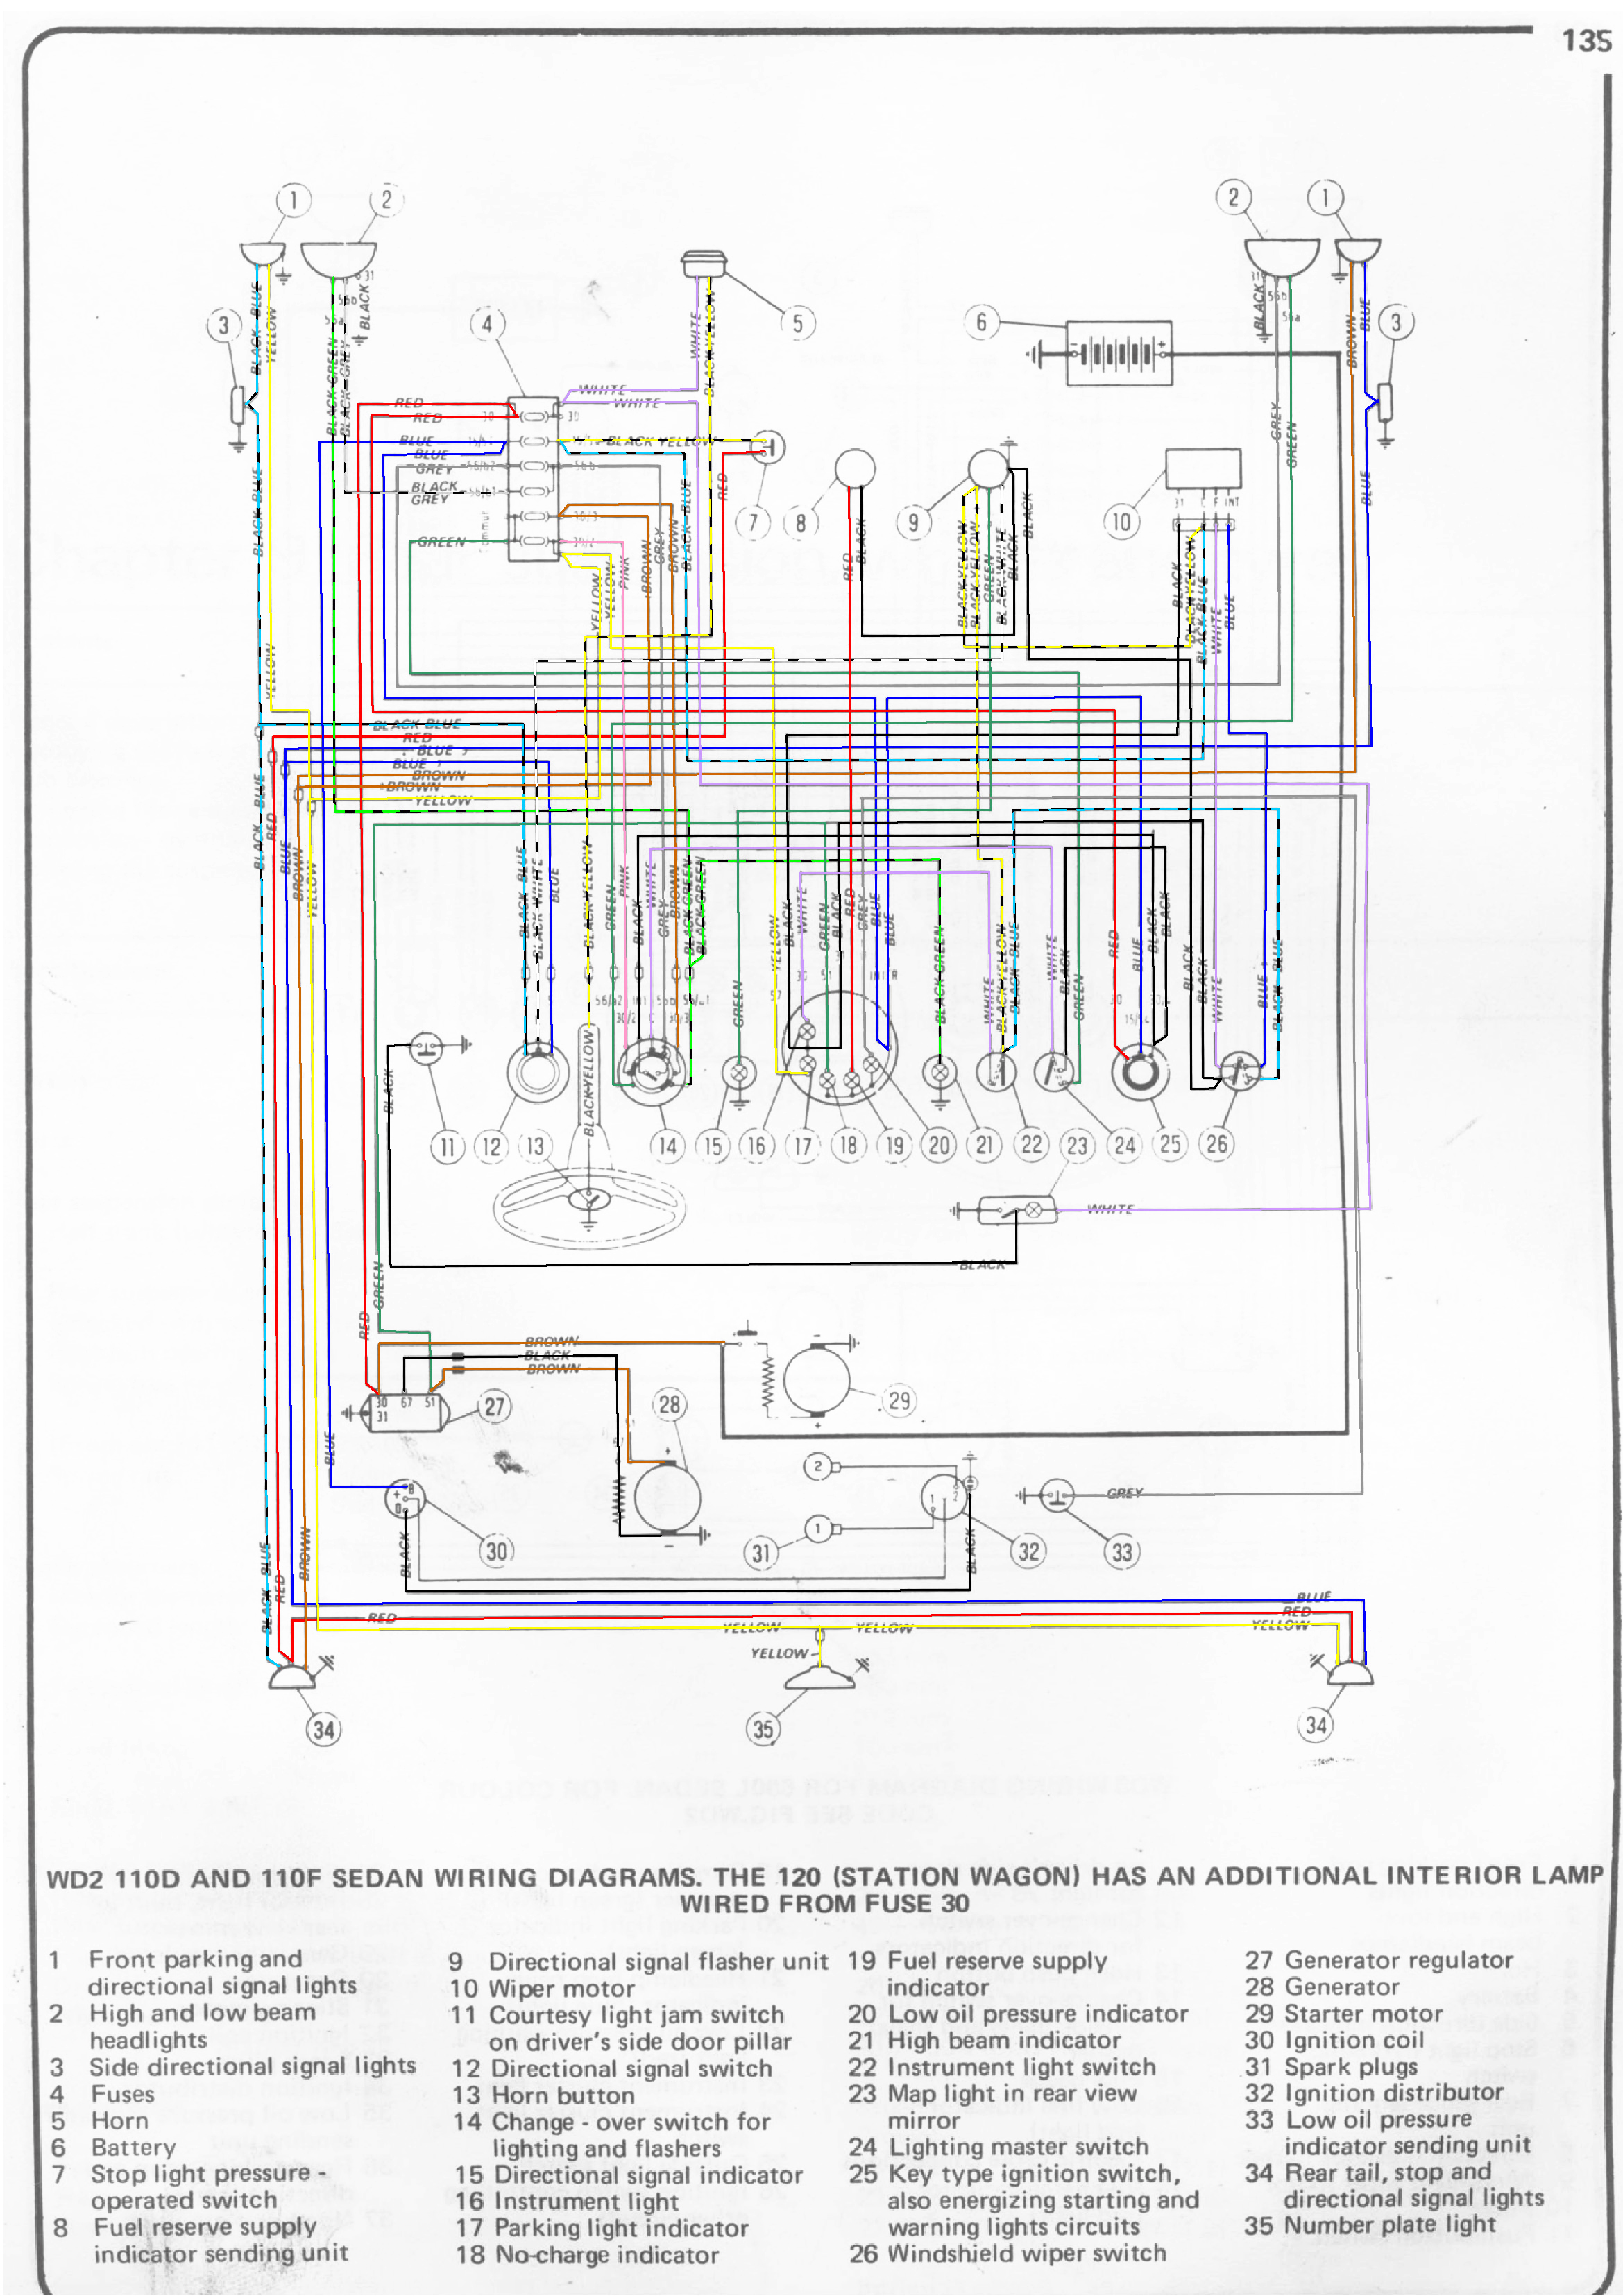 Fiat+500+Wiring+Diagram?t\\\=1508407624 2012 fiat 500 wiring diagram 2012 fiat 500 wiring diagram \u2022 wiring fiat 500 stereo wiring diagram at edmiracle.co